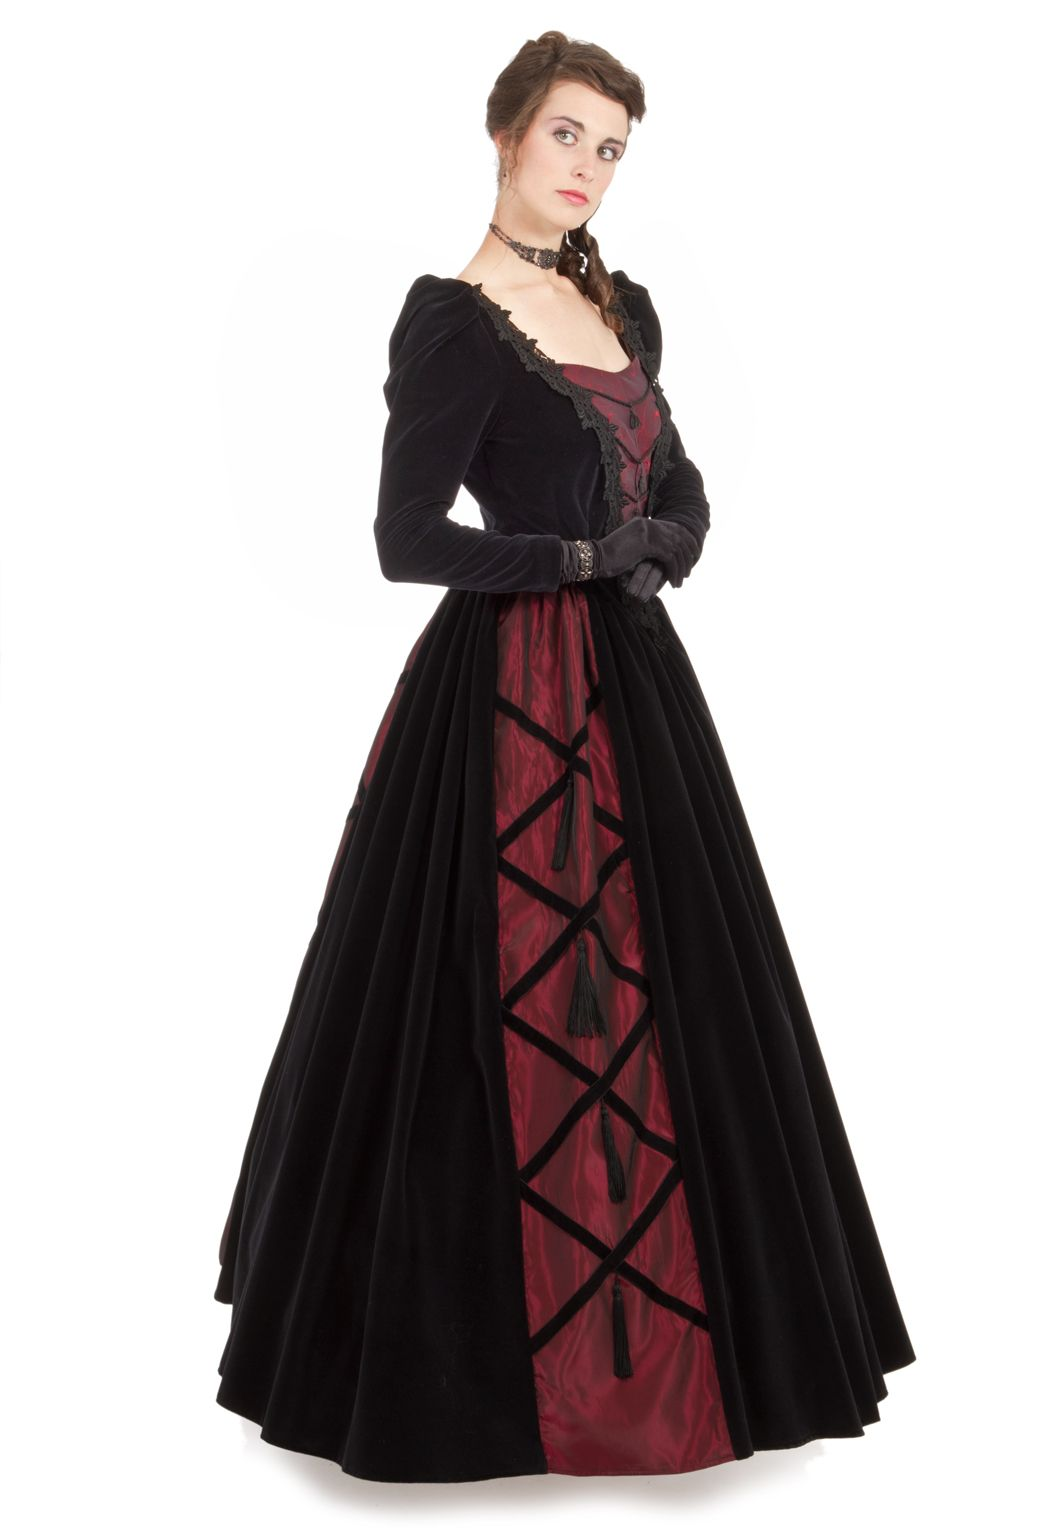 Noelle Victorian Ball Gown | Recollections | Medeival Dresses ...